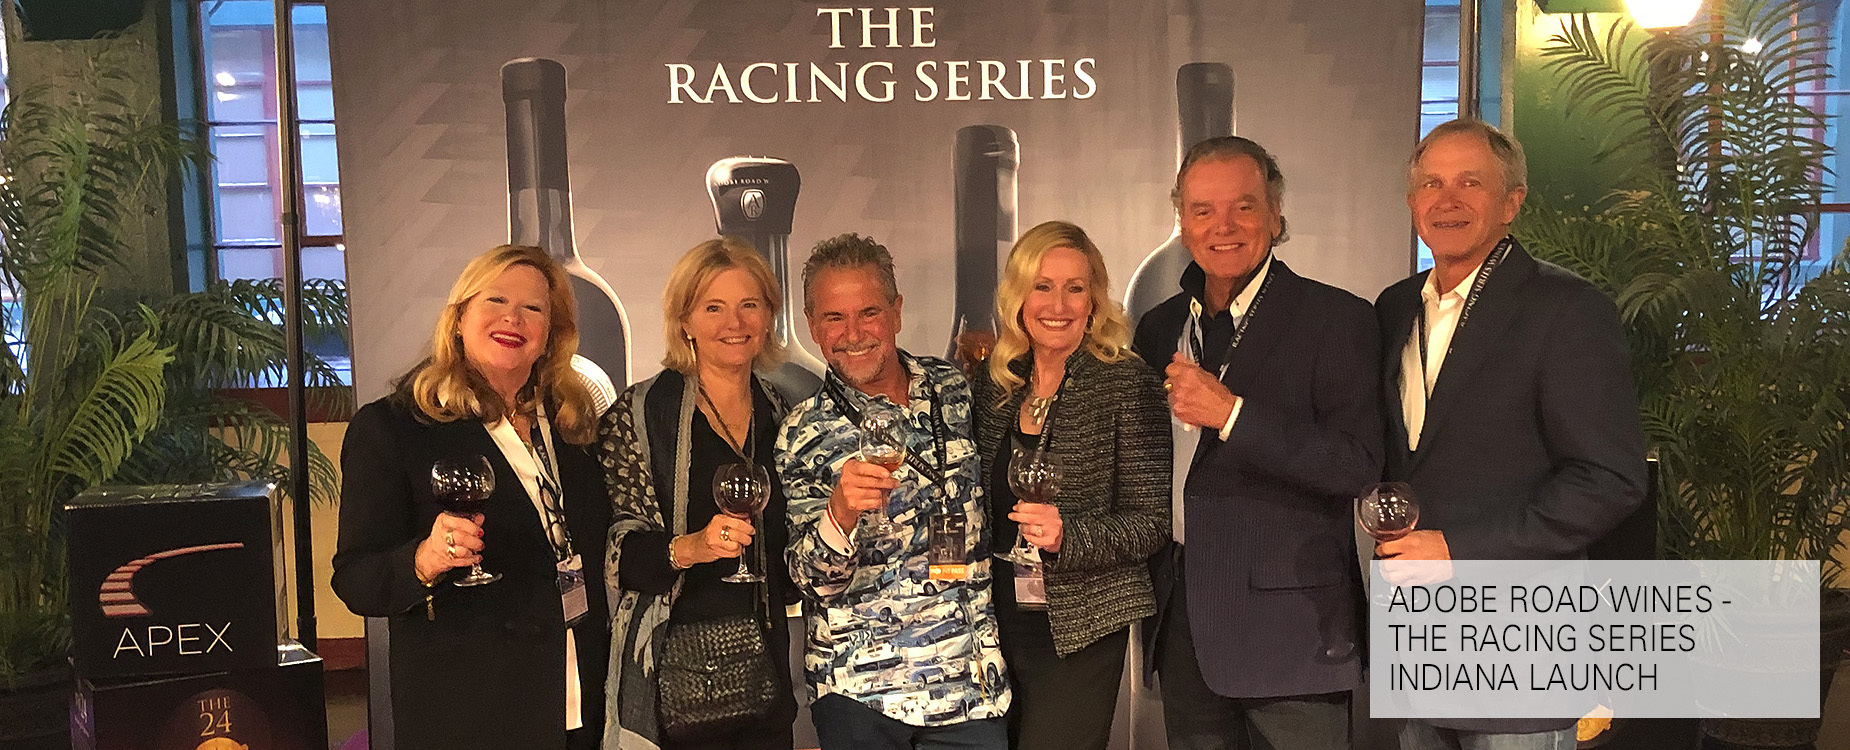 Adobe Road Winery - The Racing Series